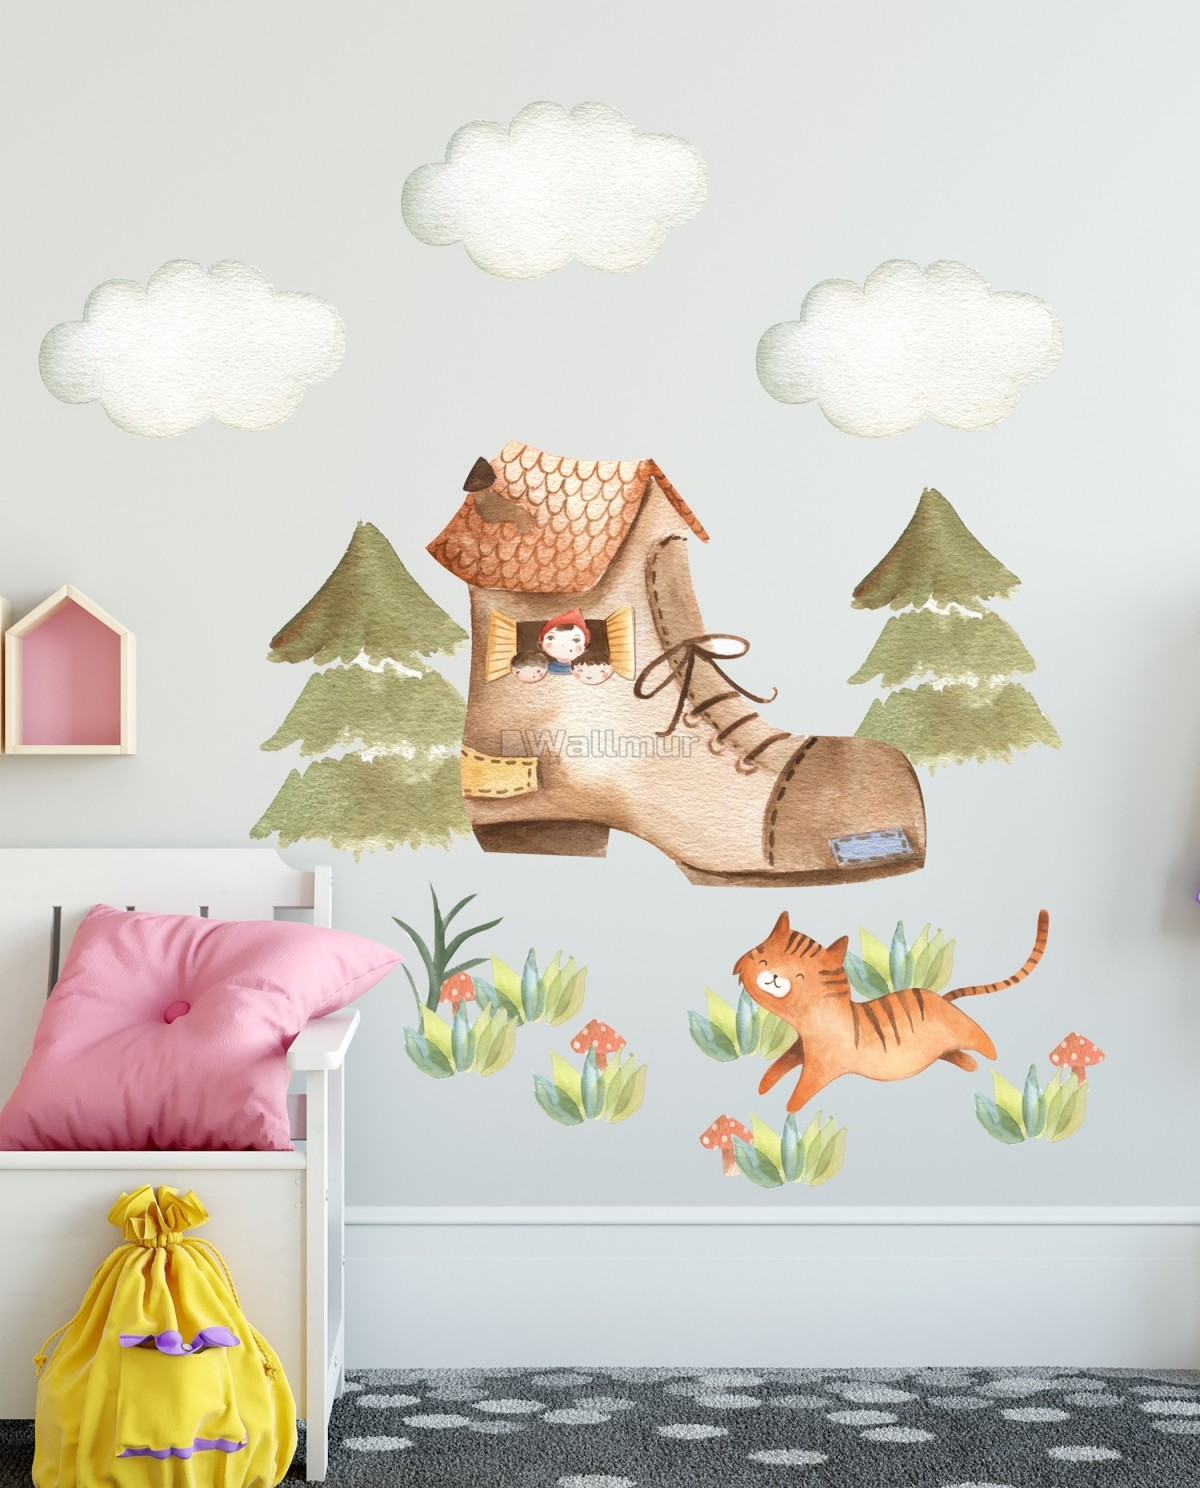 Kids Woodland Shoe with Cute Cats Wall Decal Sticker